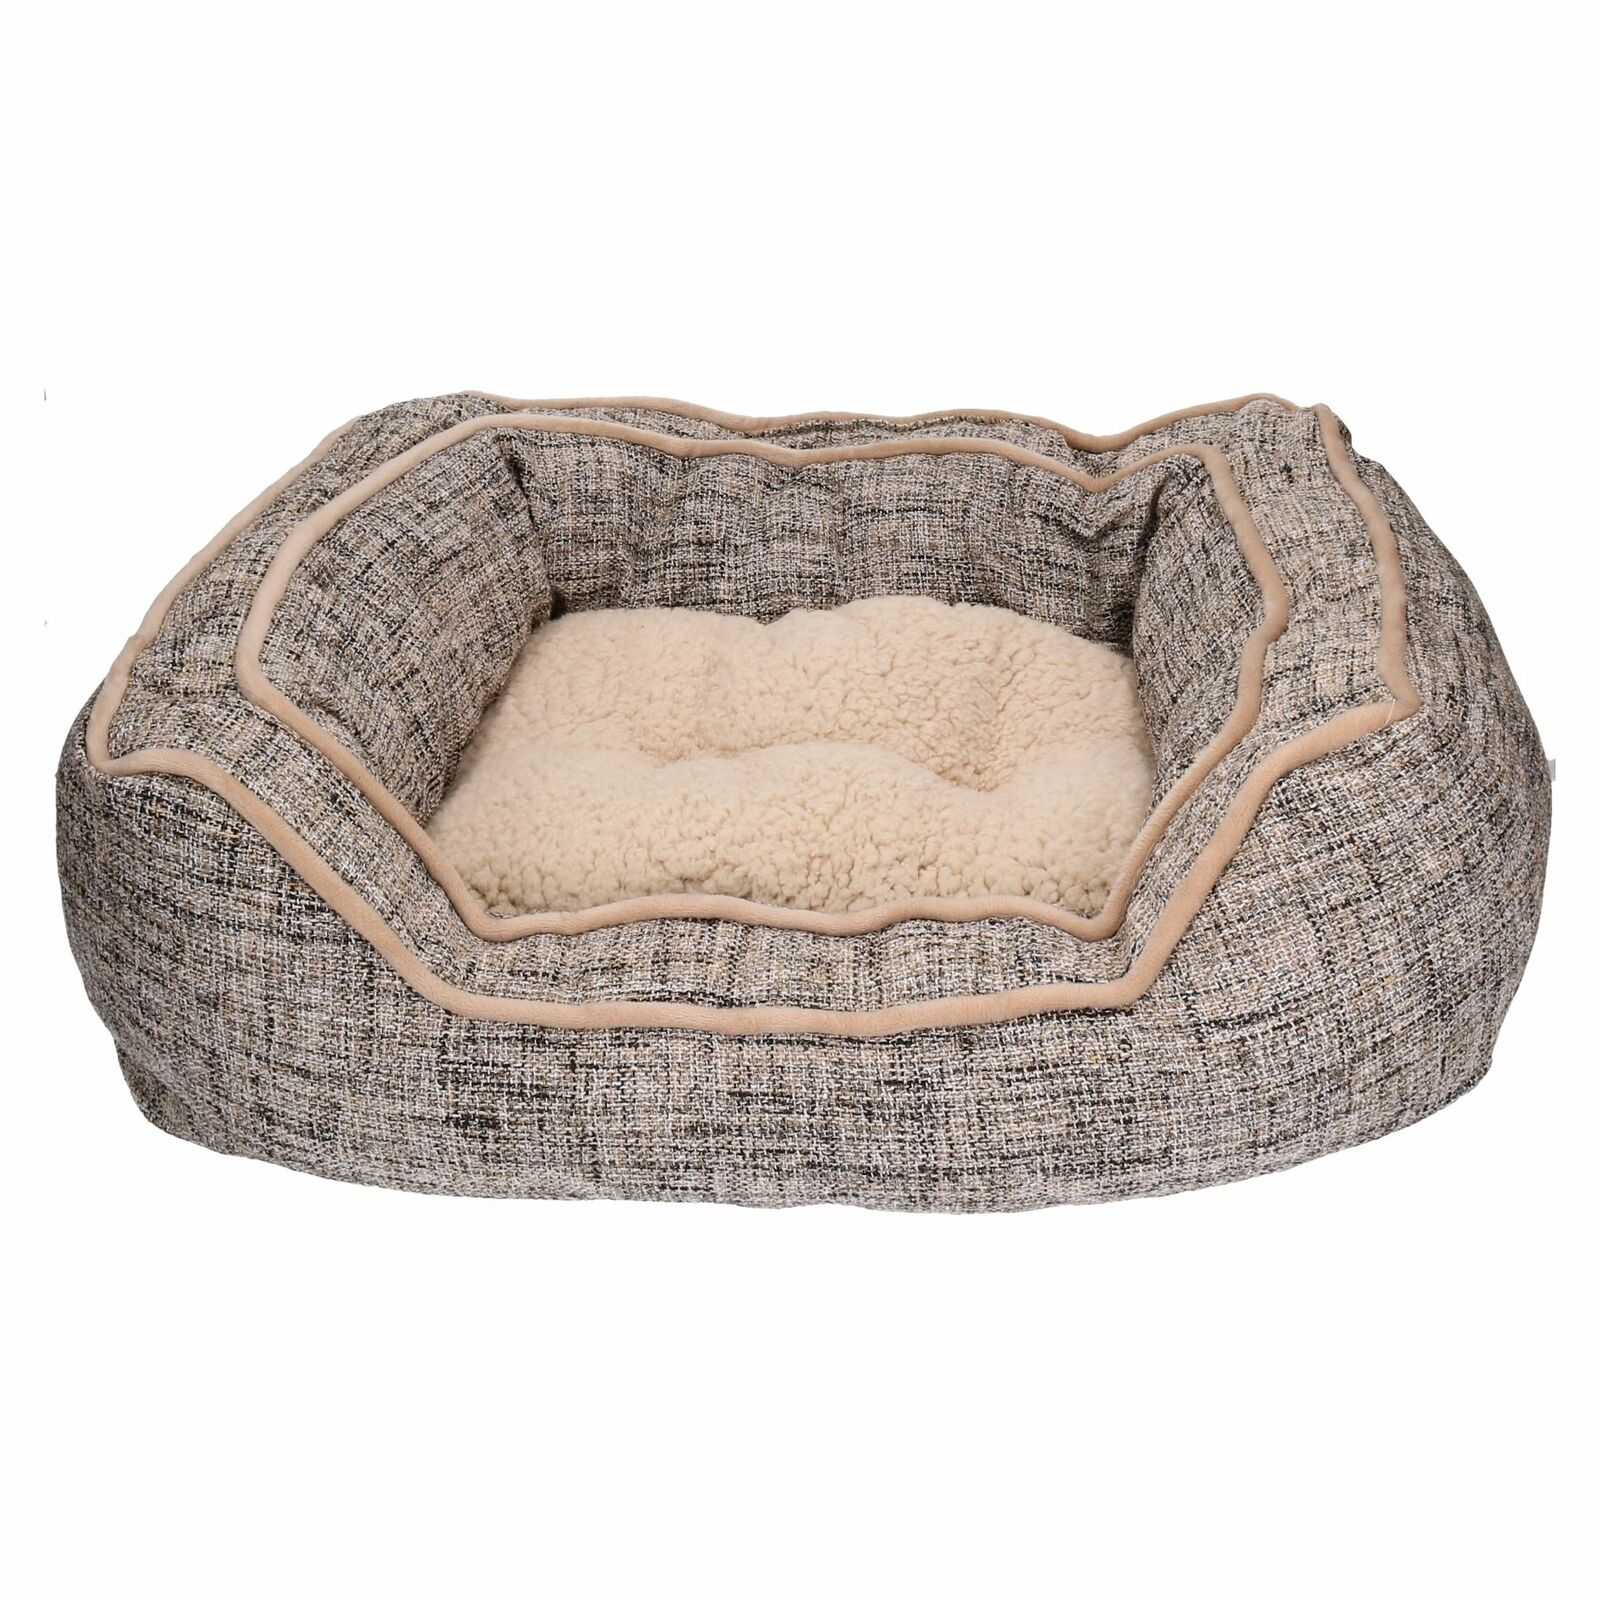 Luxury Slate & Oatmeal Dog Bed -Small silva-5-pets Rosewood